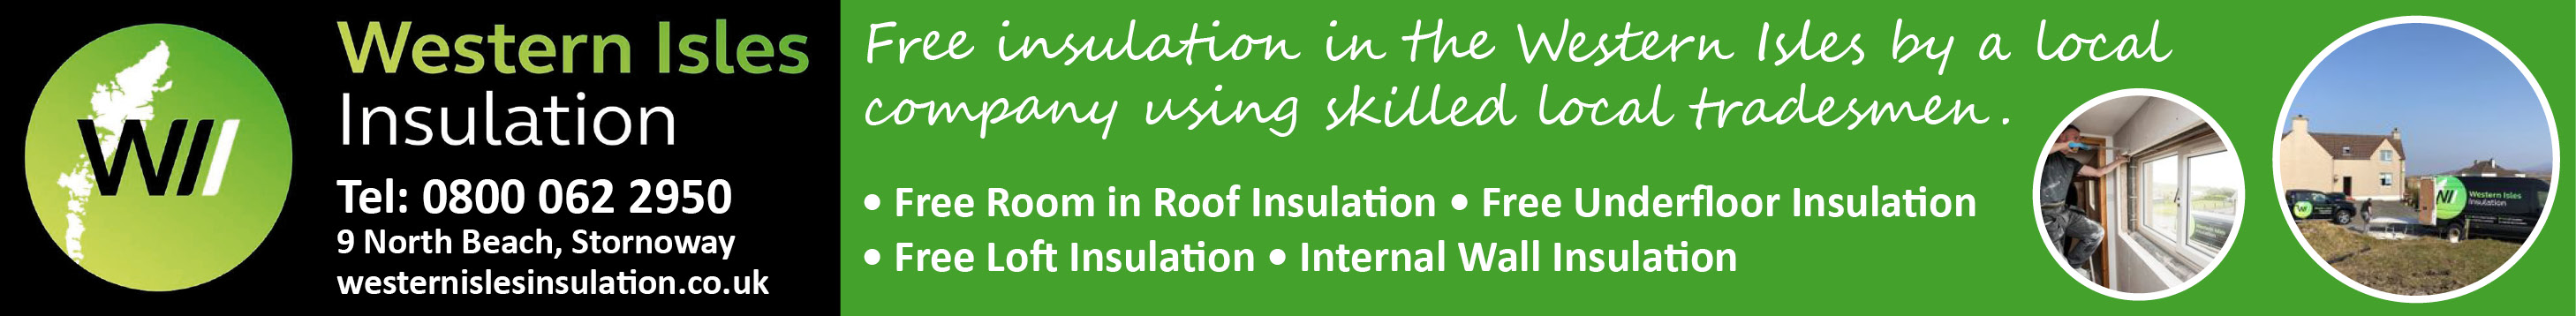 Western Isles Insulation